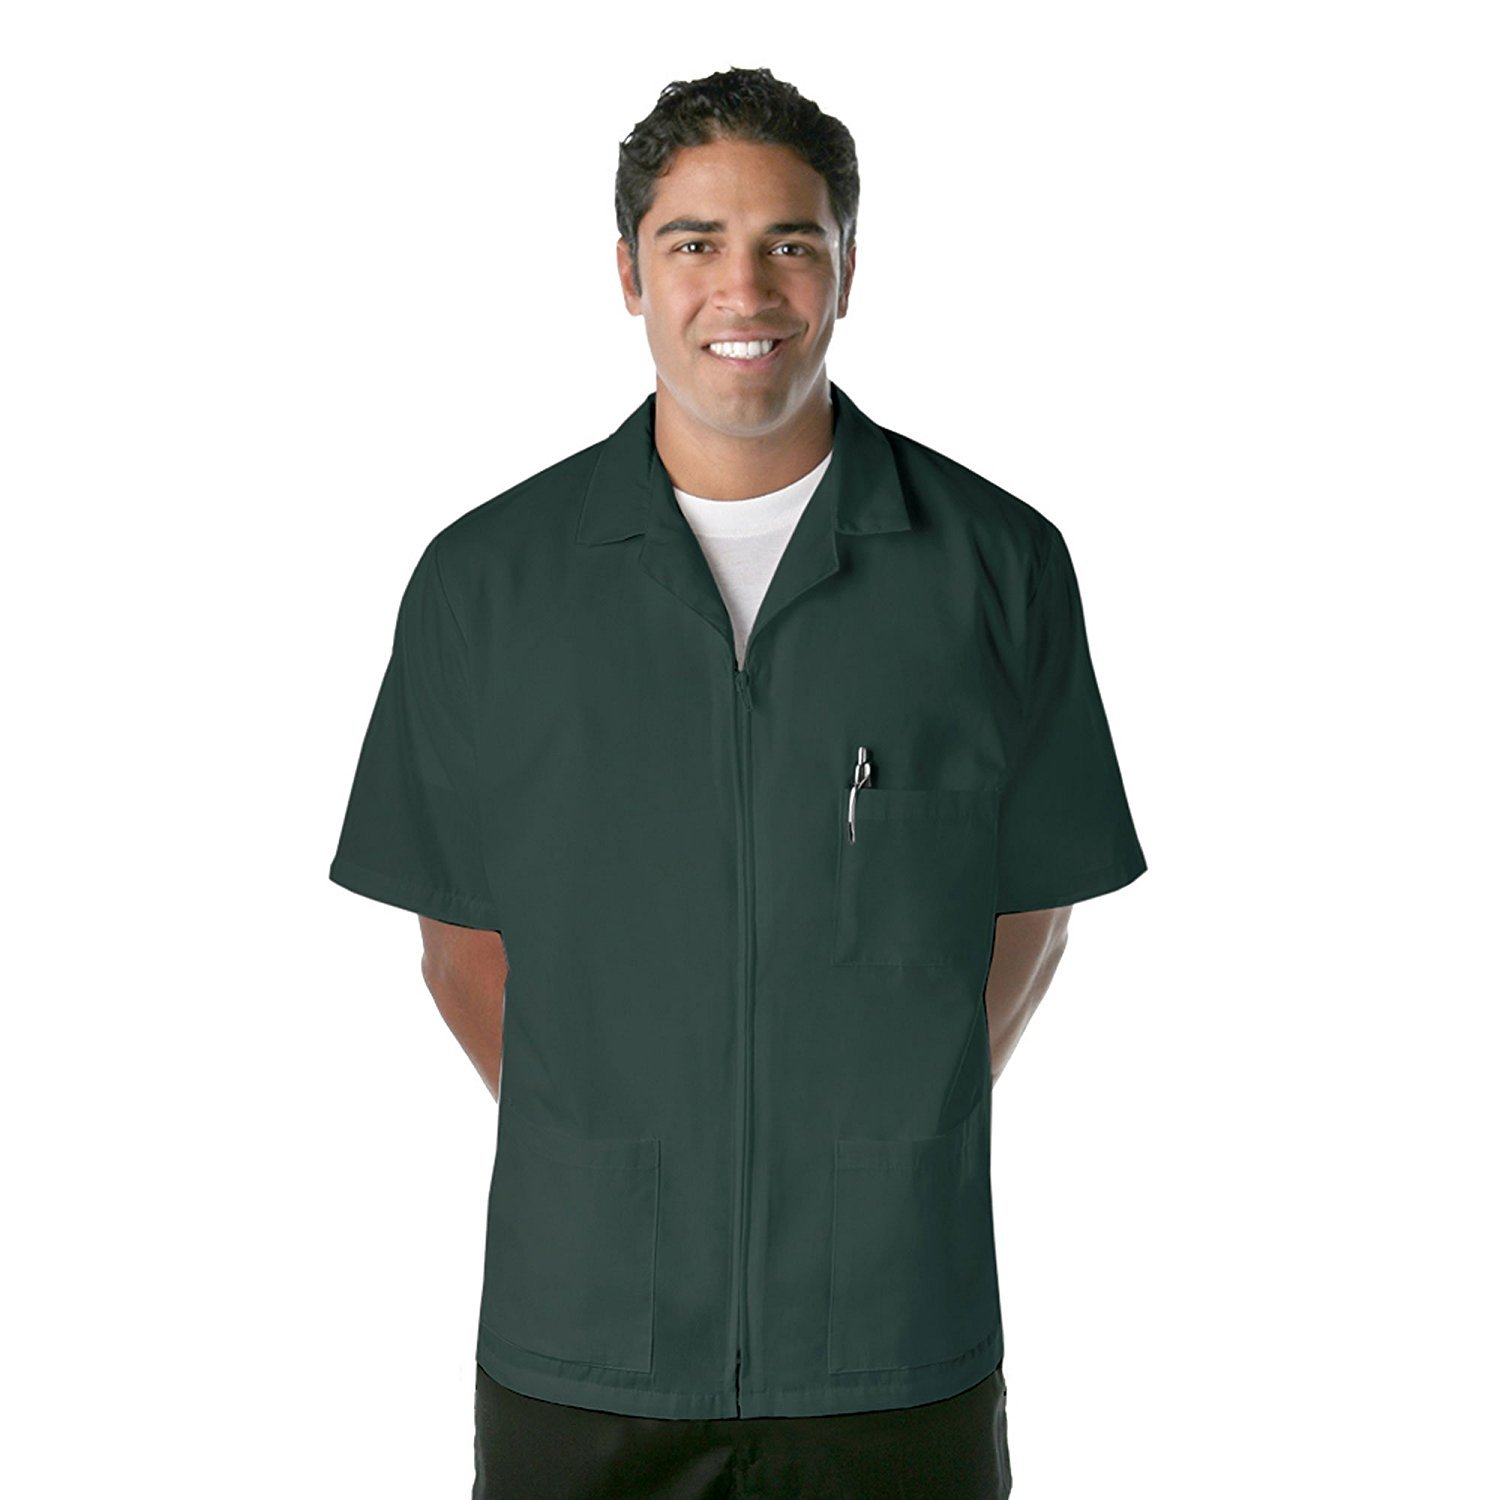 Fame Adult's Zipper Smock Fame Adult's Zipper Smock 44